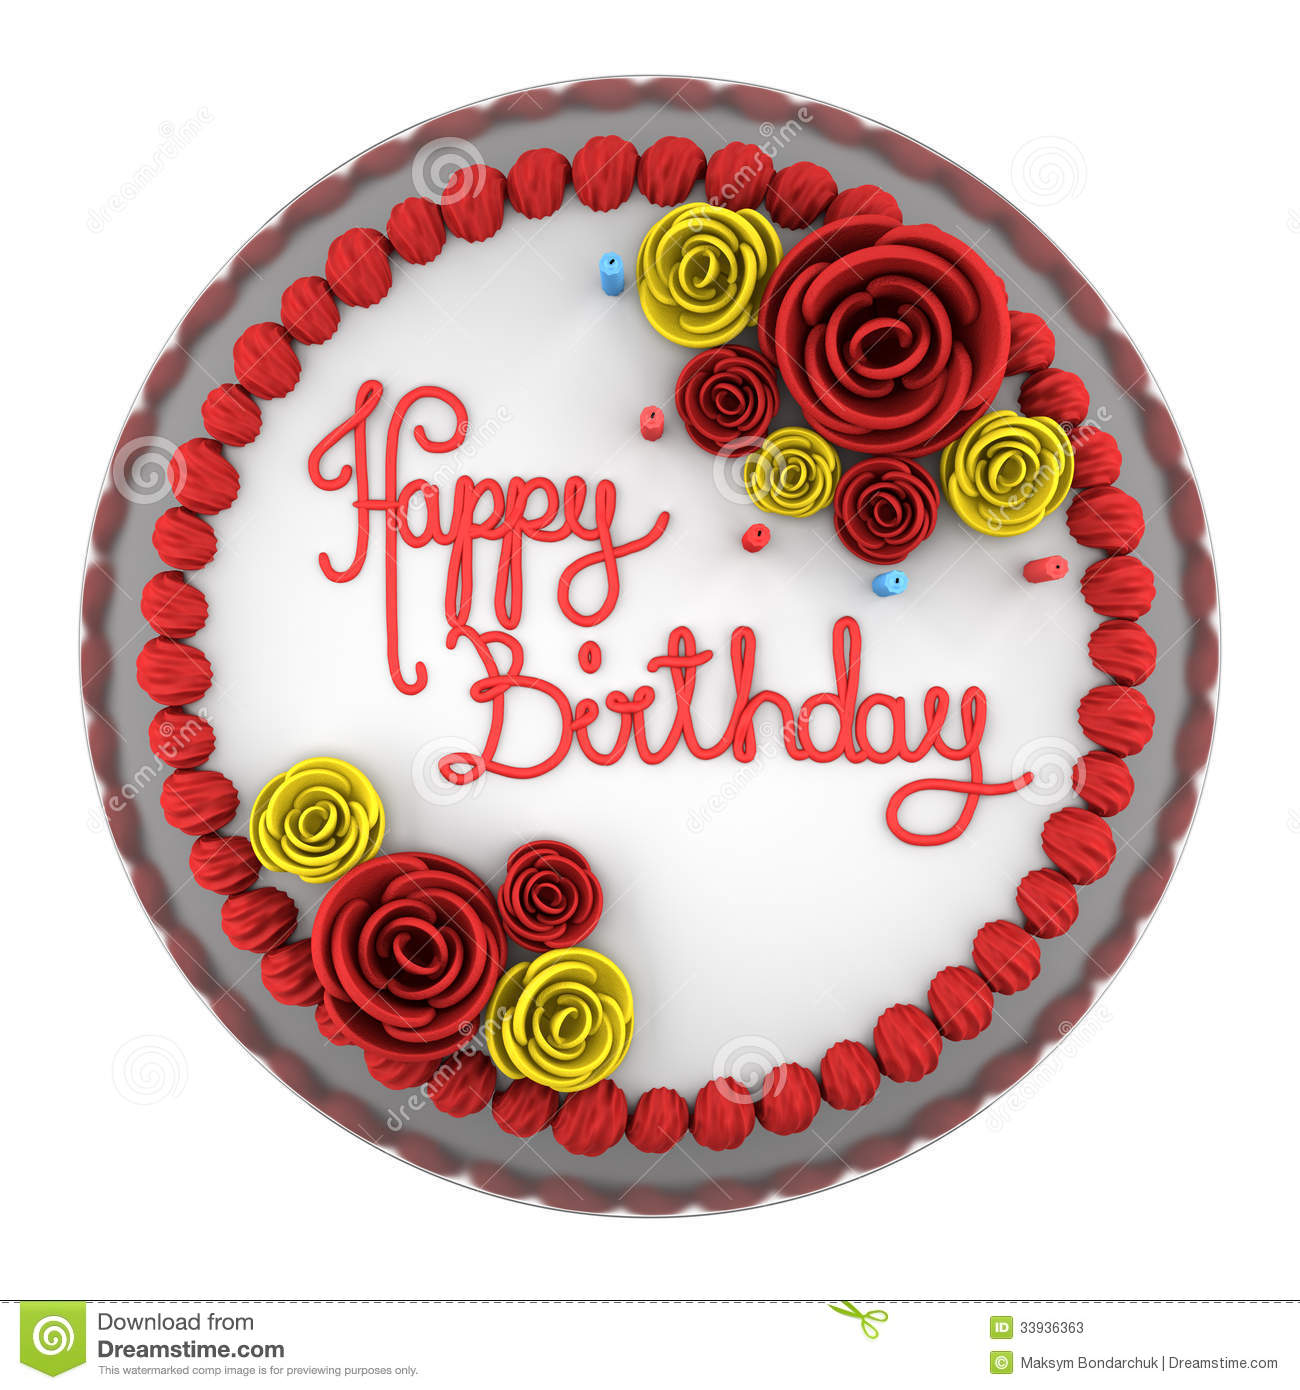 Cake Images Top View : Top View Of Round Birthday Cake With Candles On Dish ...